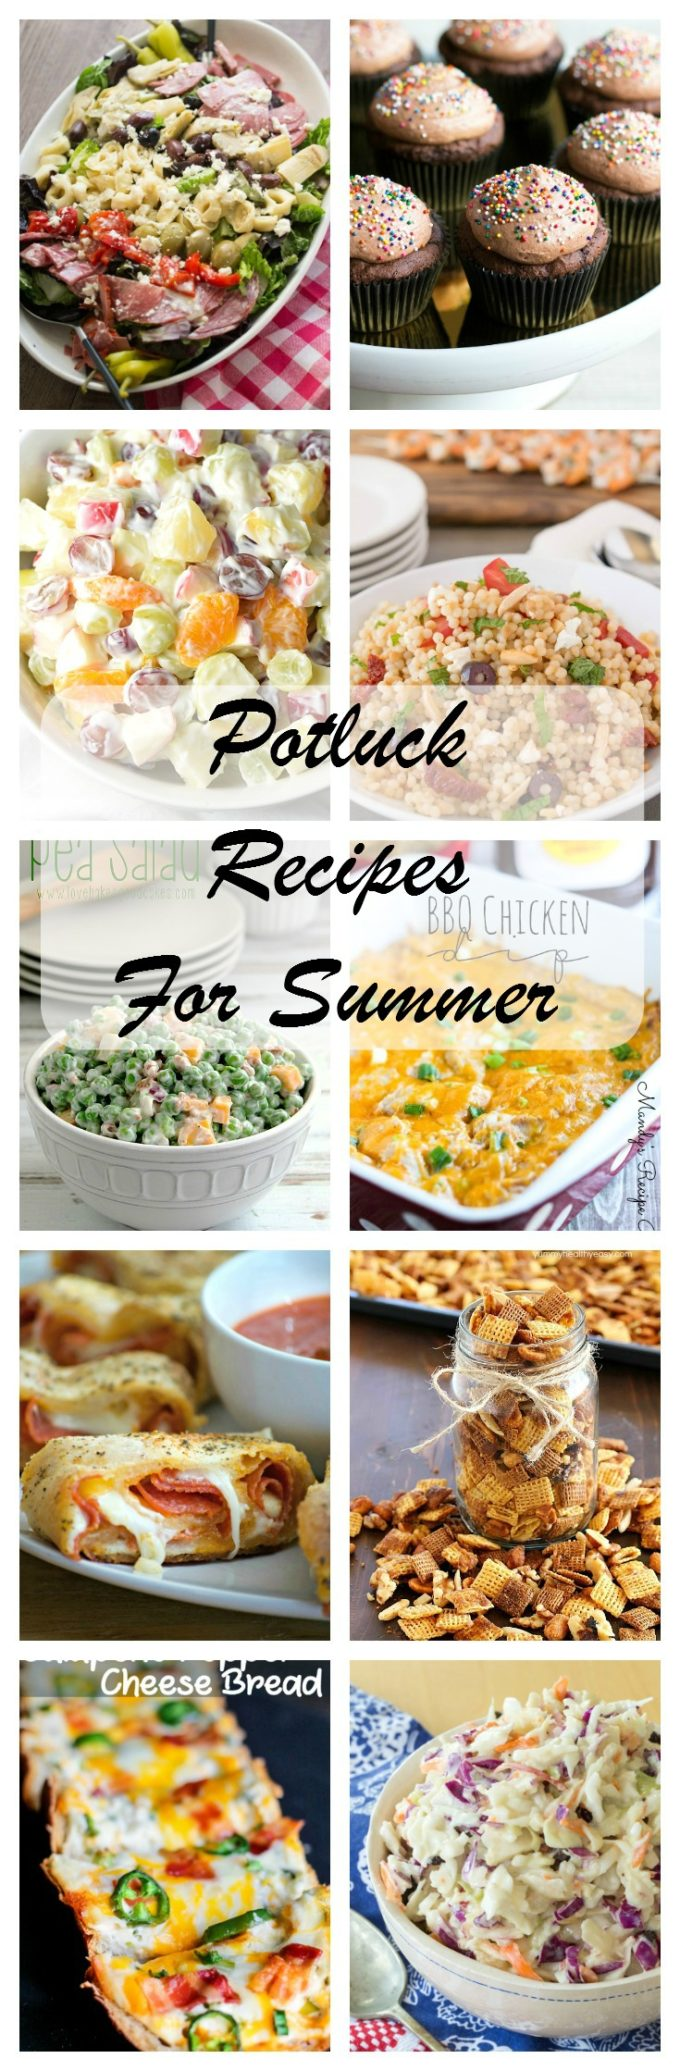 The BEST Summer Potluck recipes are all here for you to enjoy! Summer food is the best, and there's tons of new recipes to try!